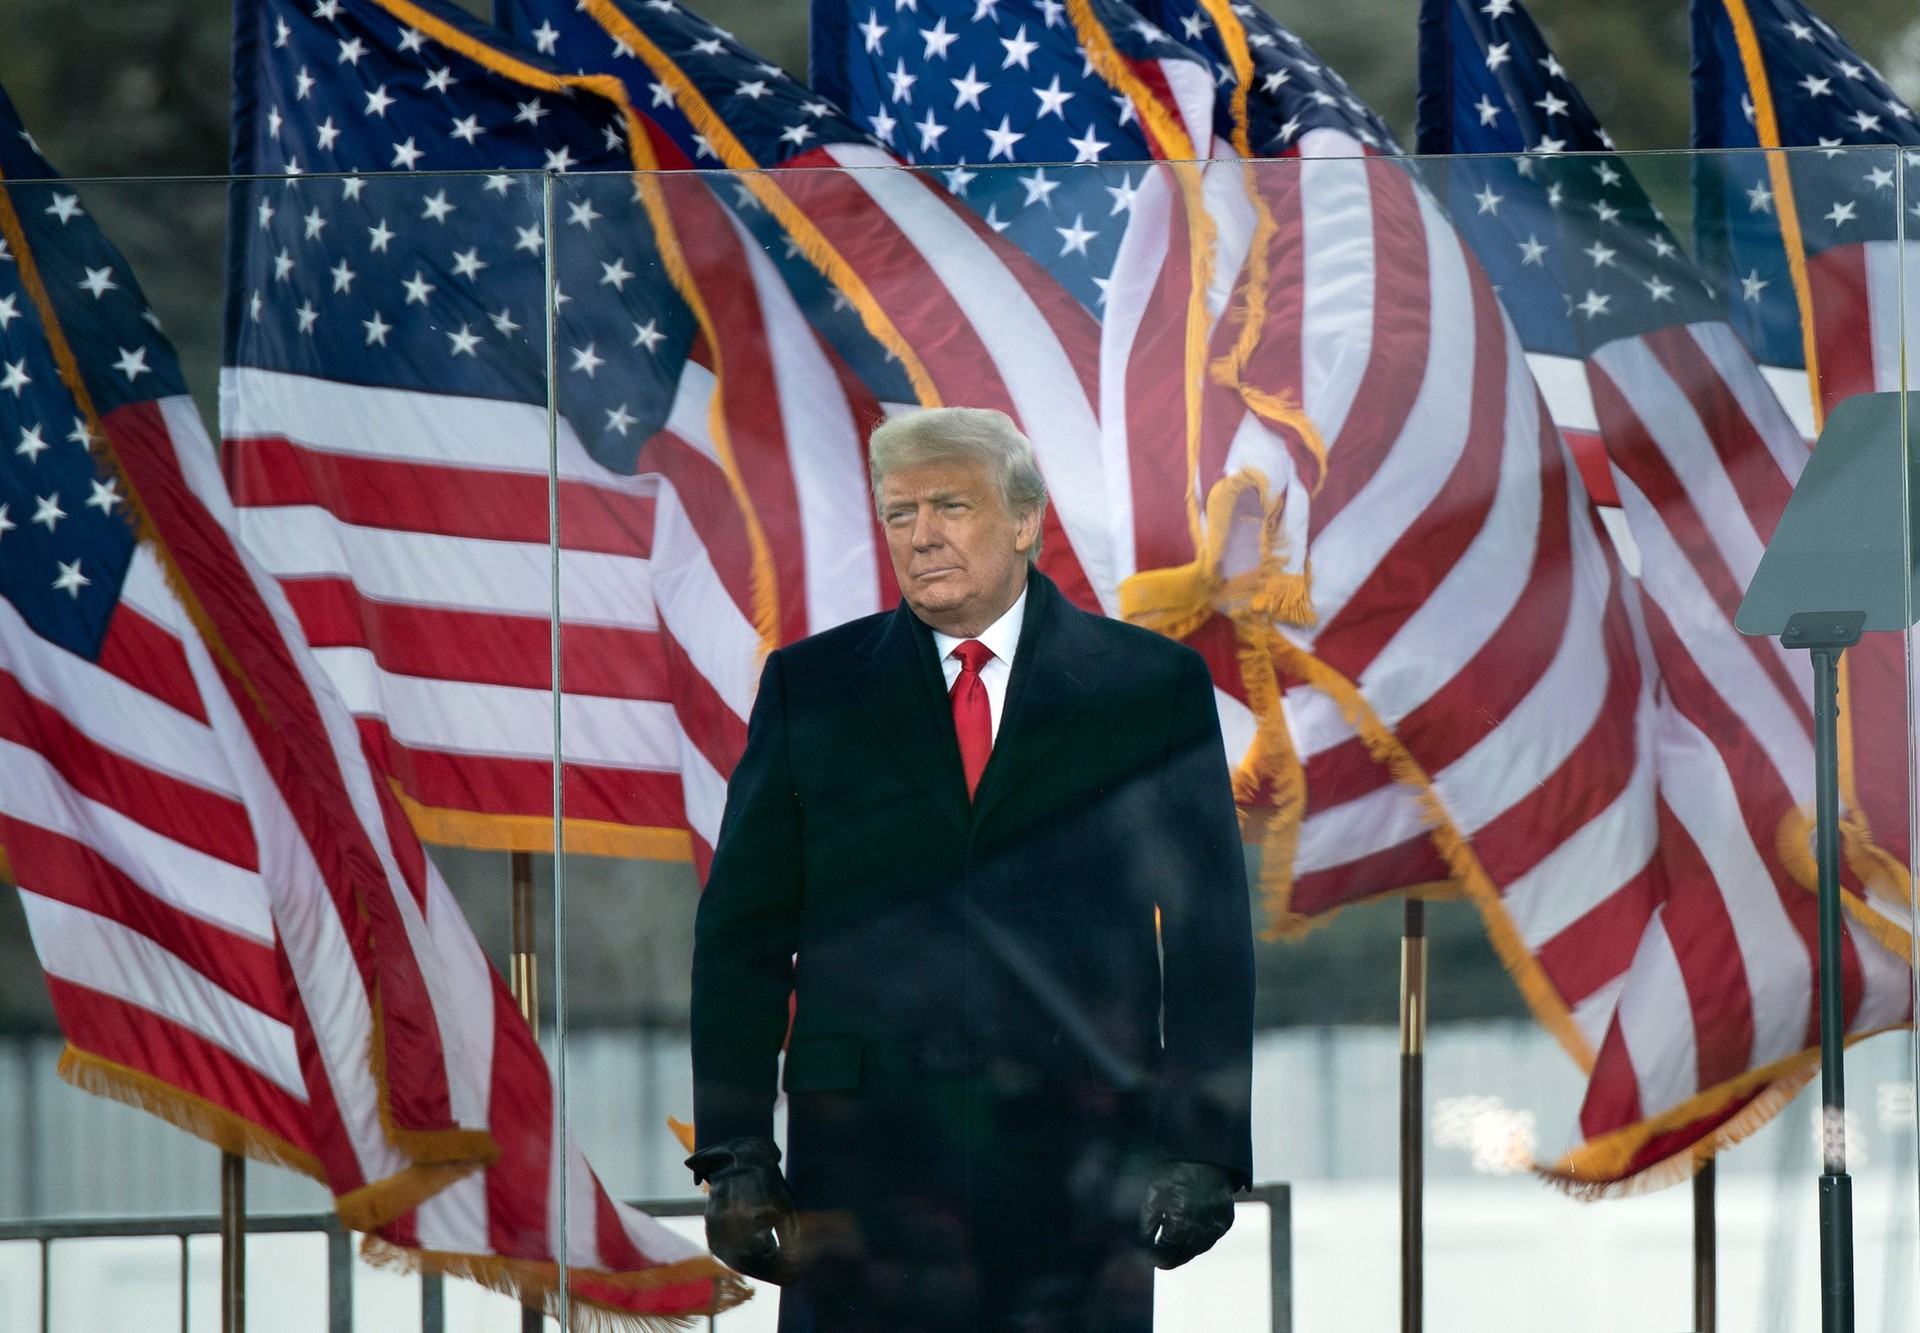 Donald Trump standing outside, behind clear barriers and in front of a row of billowing American flags